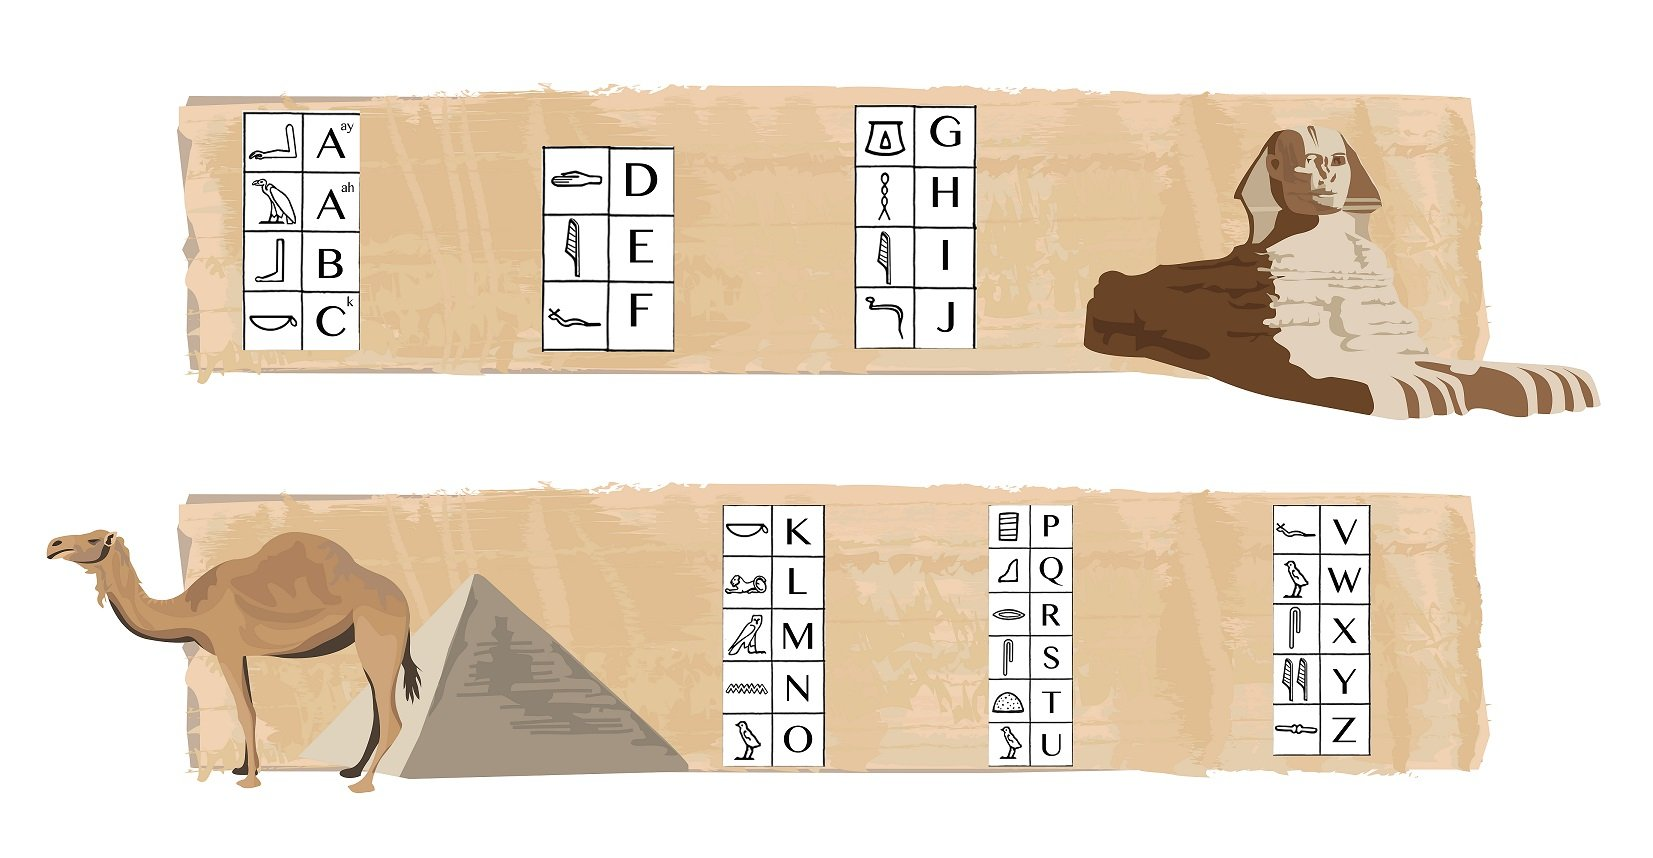 Escape Room Ideas Hieroglyphics